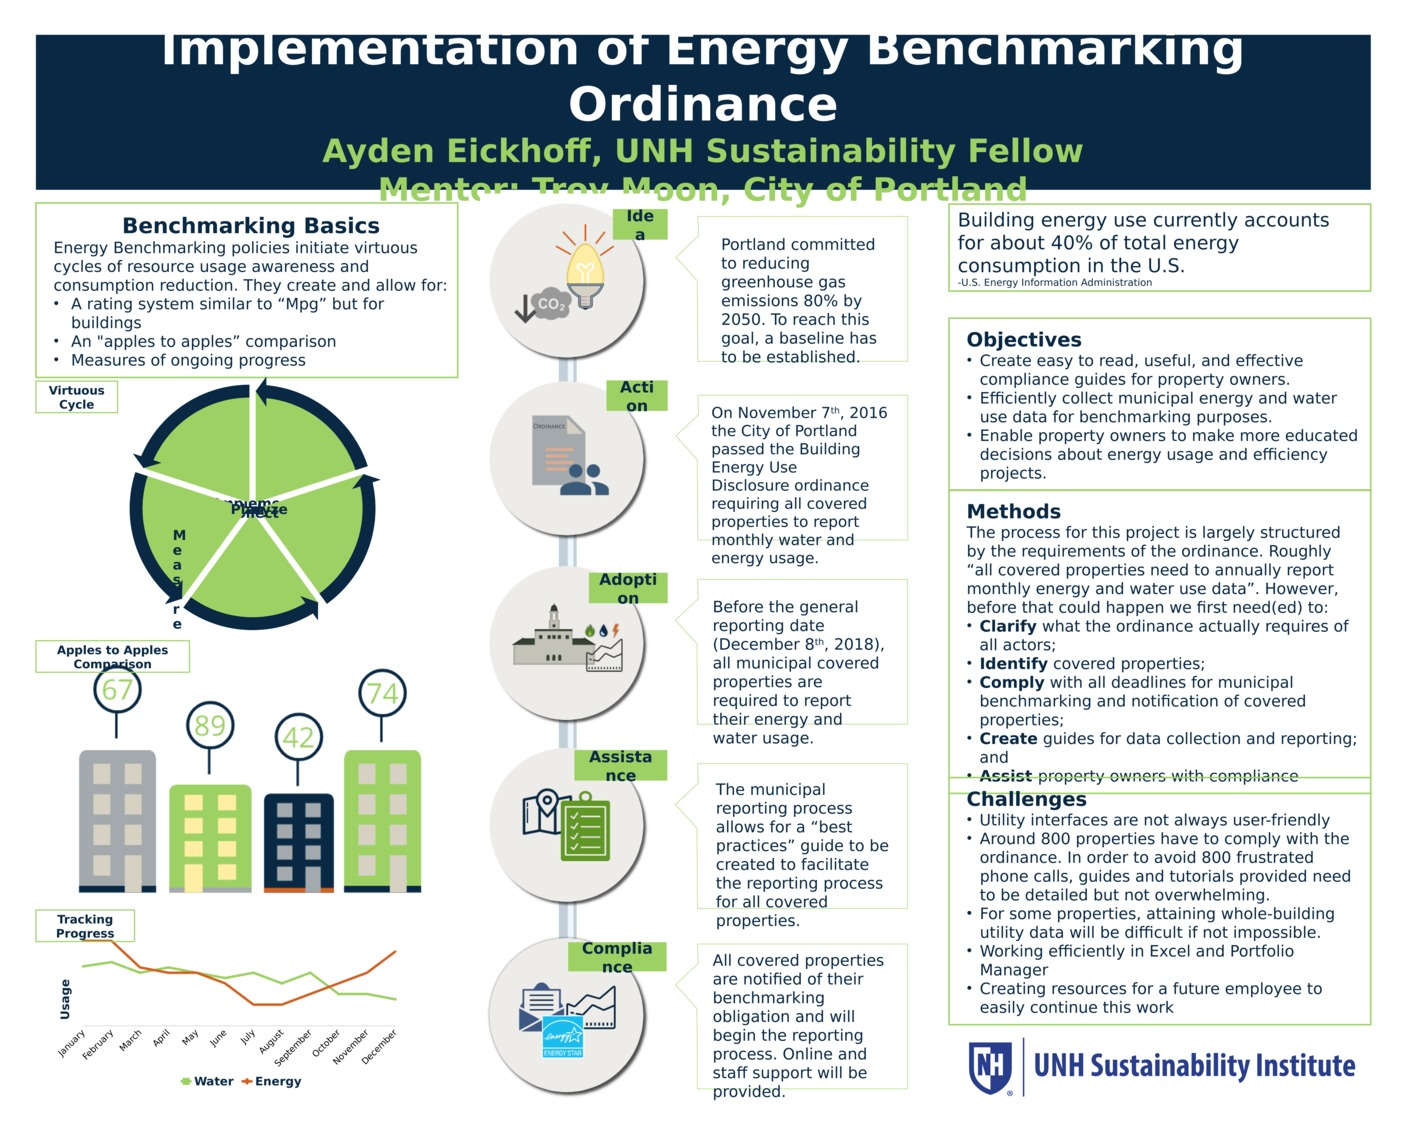 Energy Benchmarking Ordinance Ayden Eickhoff by aydeneickhoff